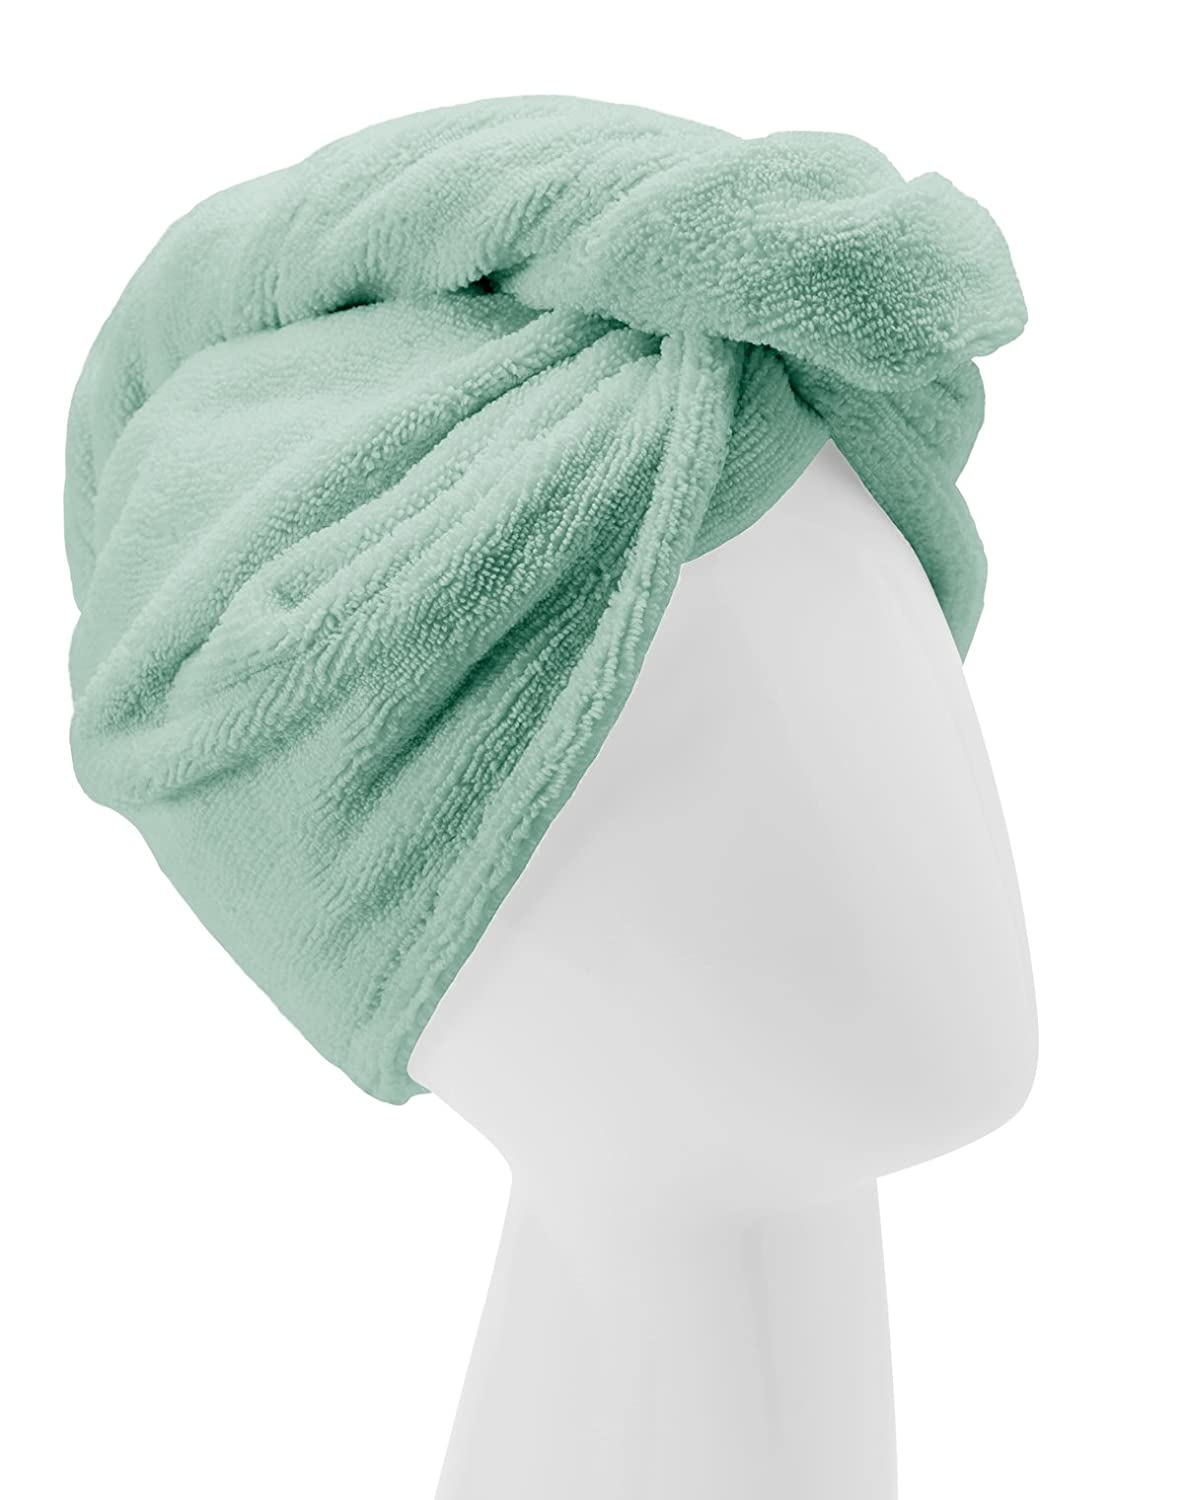 Turbie Twist Microfiber Hair Towel Wrap [Single Pack] – The Original Microfiber Hair Wrap As Seen On TV! Available in Pink, Blue, Purple and Aqua Hair Turban Towel Wraps (Aqua)